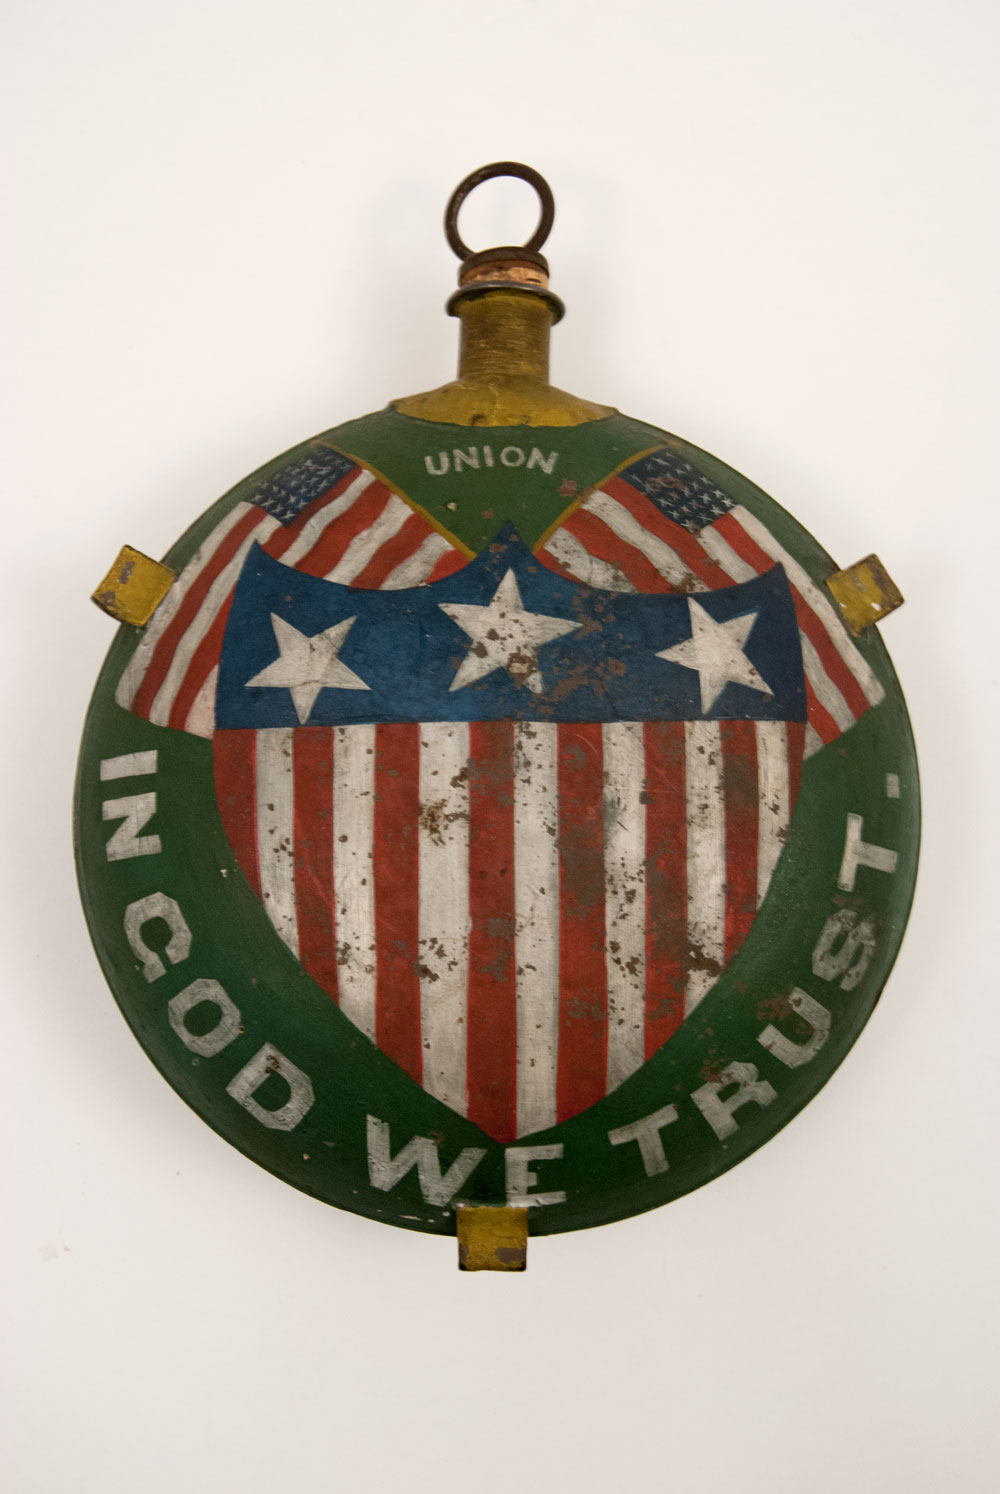 Antique Civil War GAR Canteen with Patriotic Flags and Original Paint Decoration